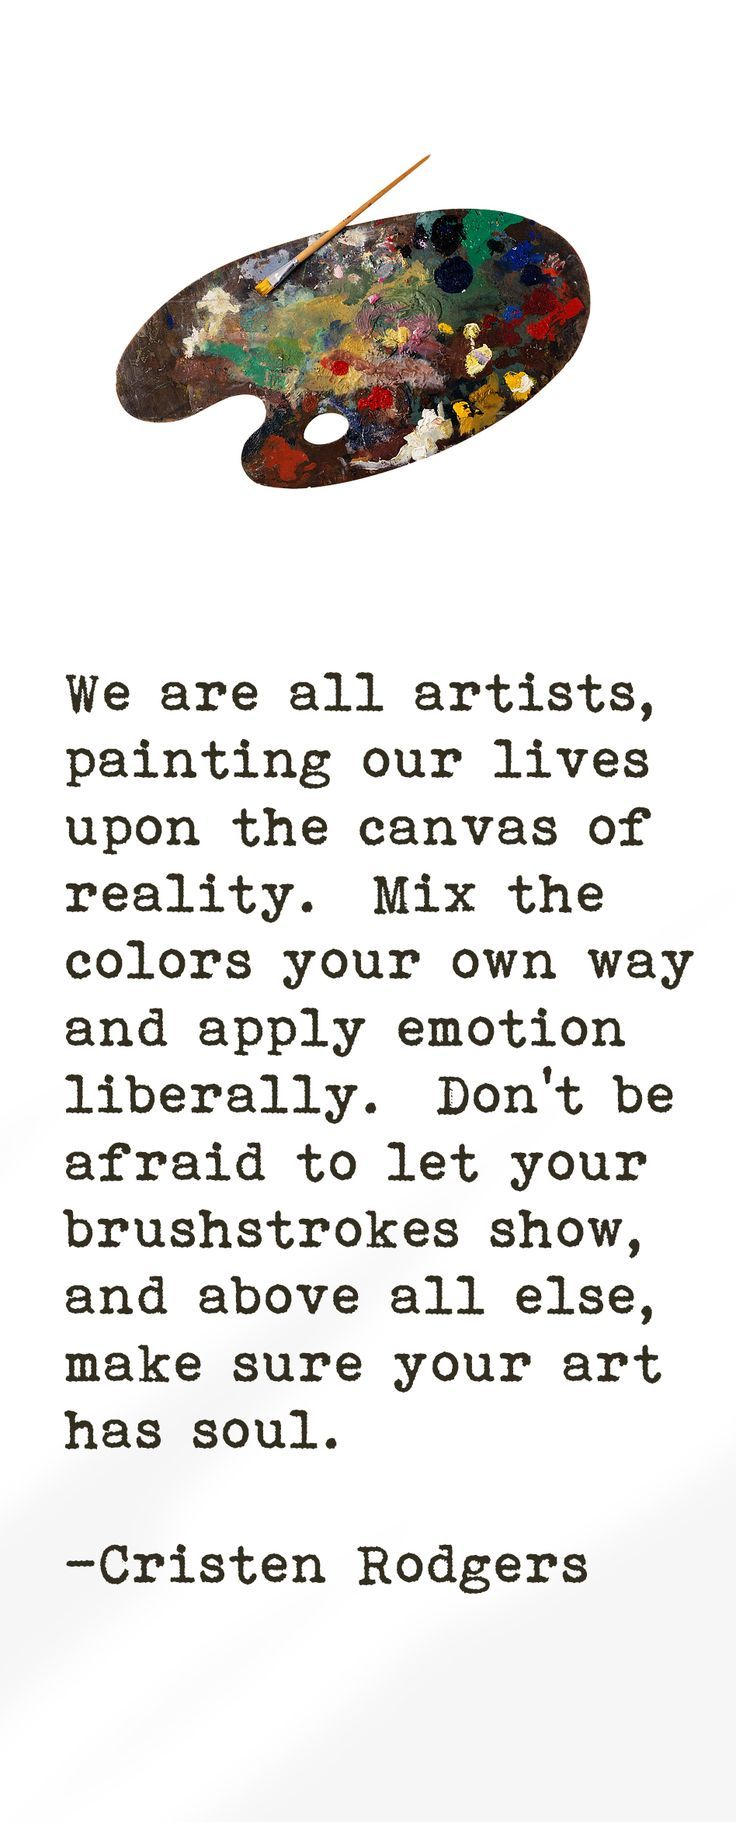 We are all artists, painting our lives upon the canvas of reality.